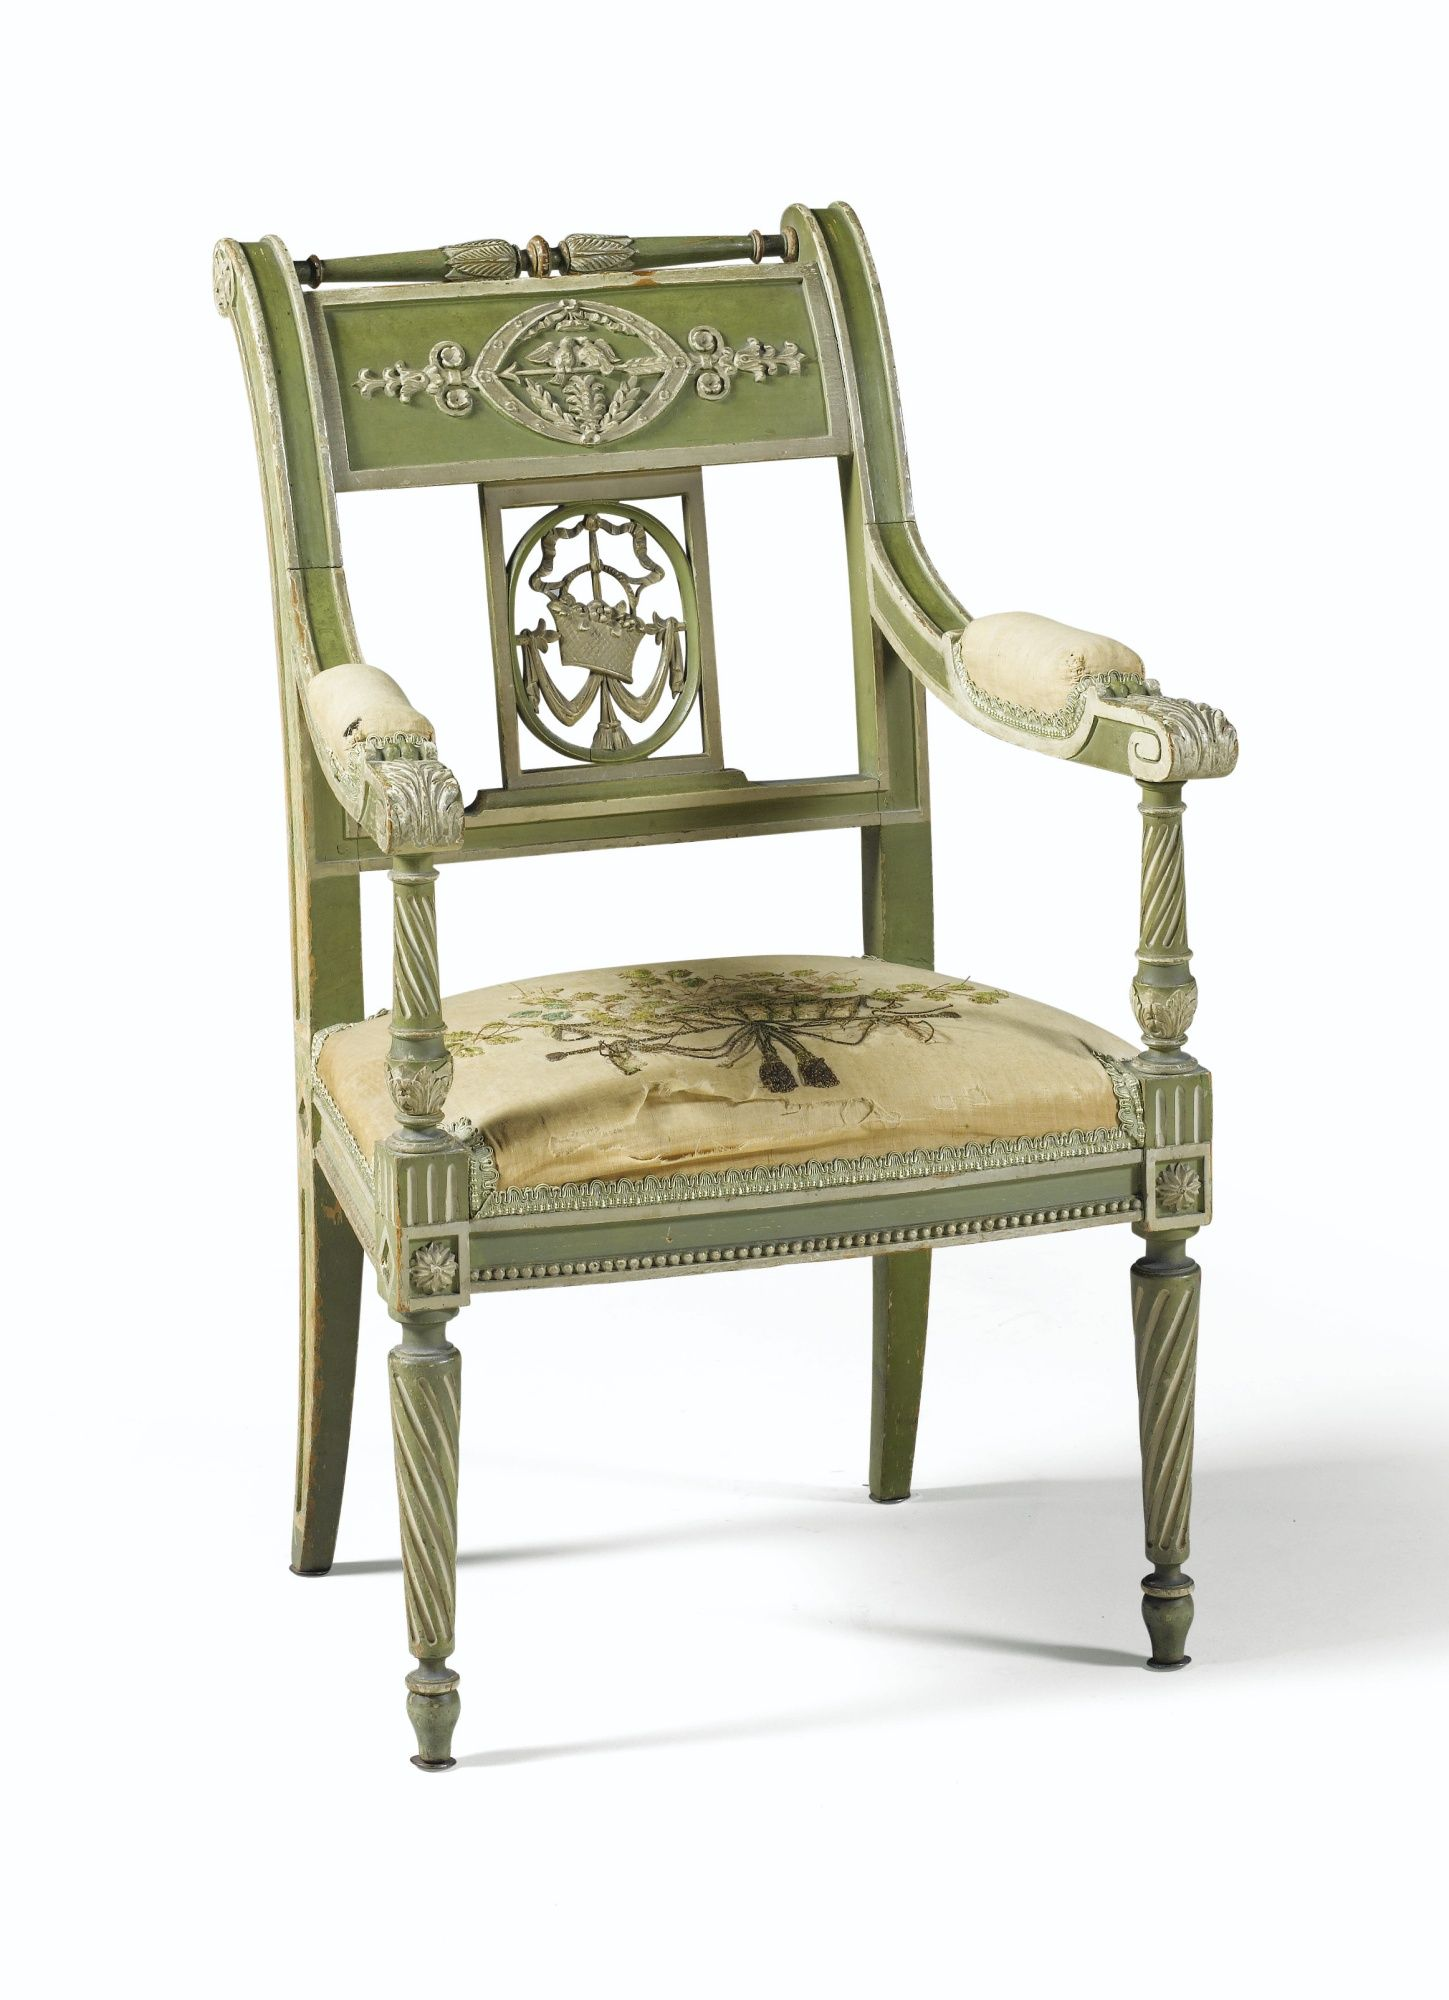 France Small Green And Cream Painted Armchair In Directoire Style